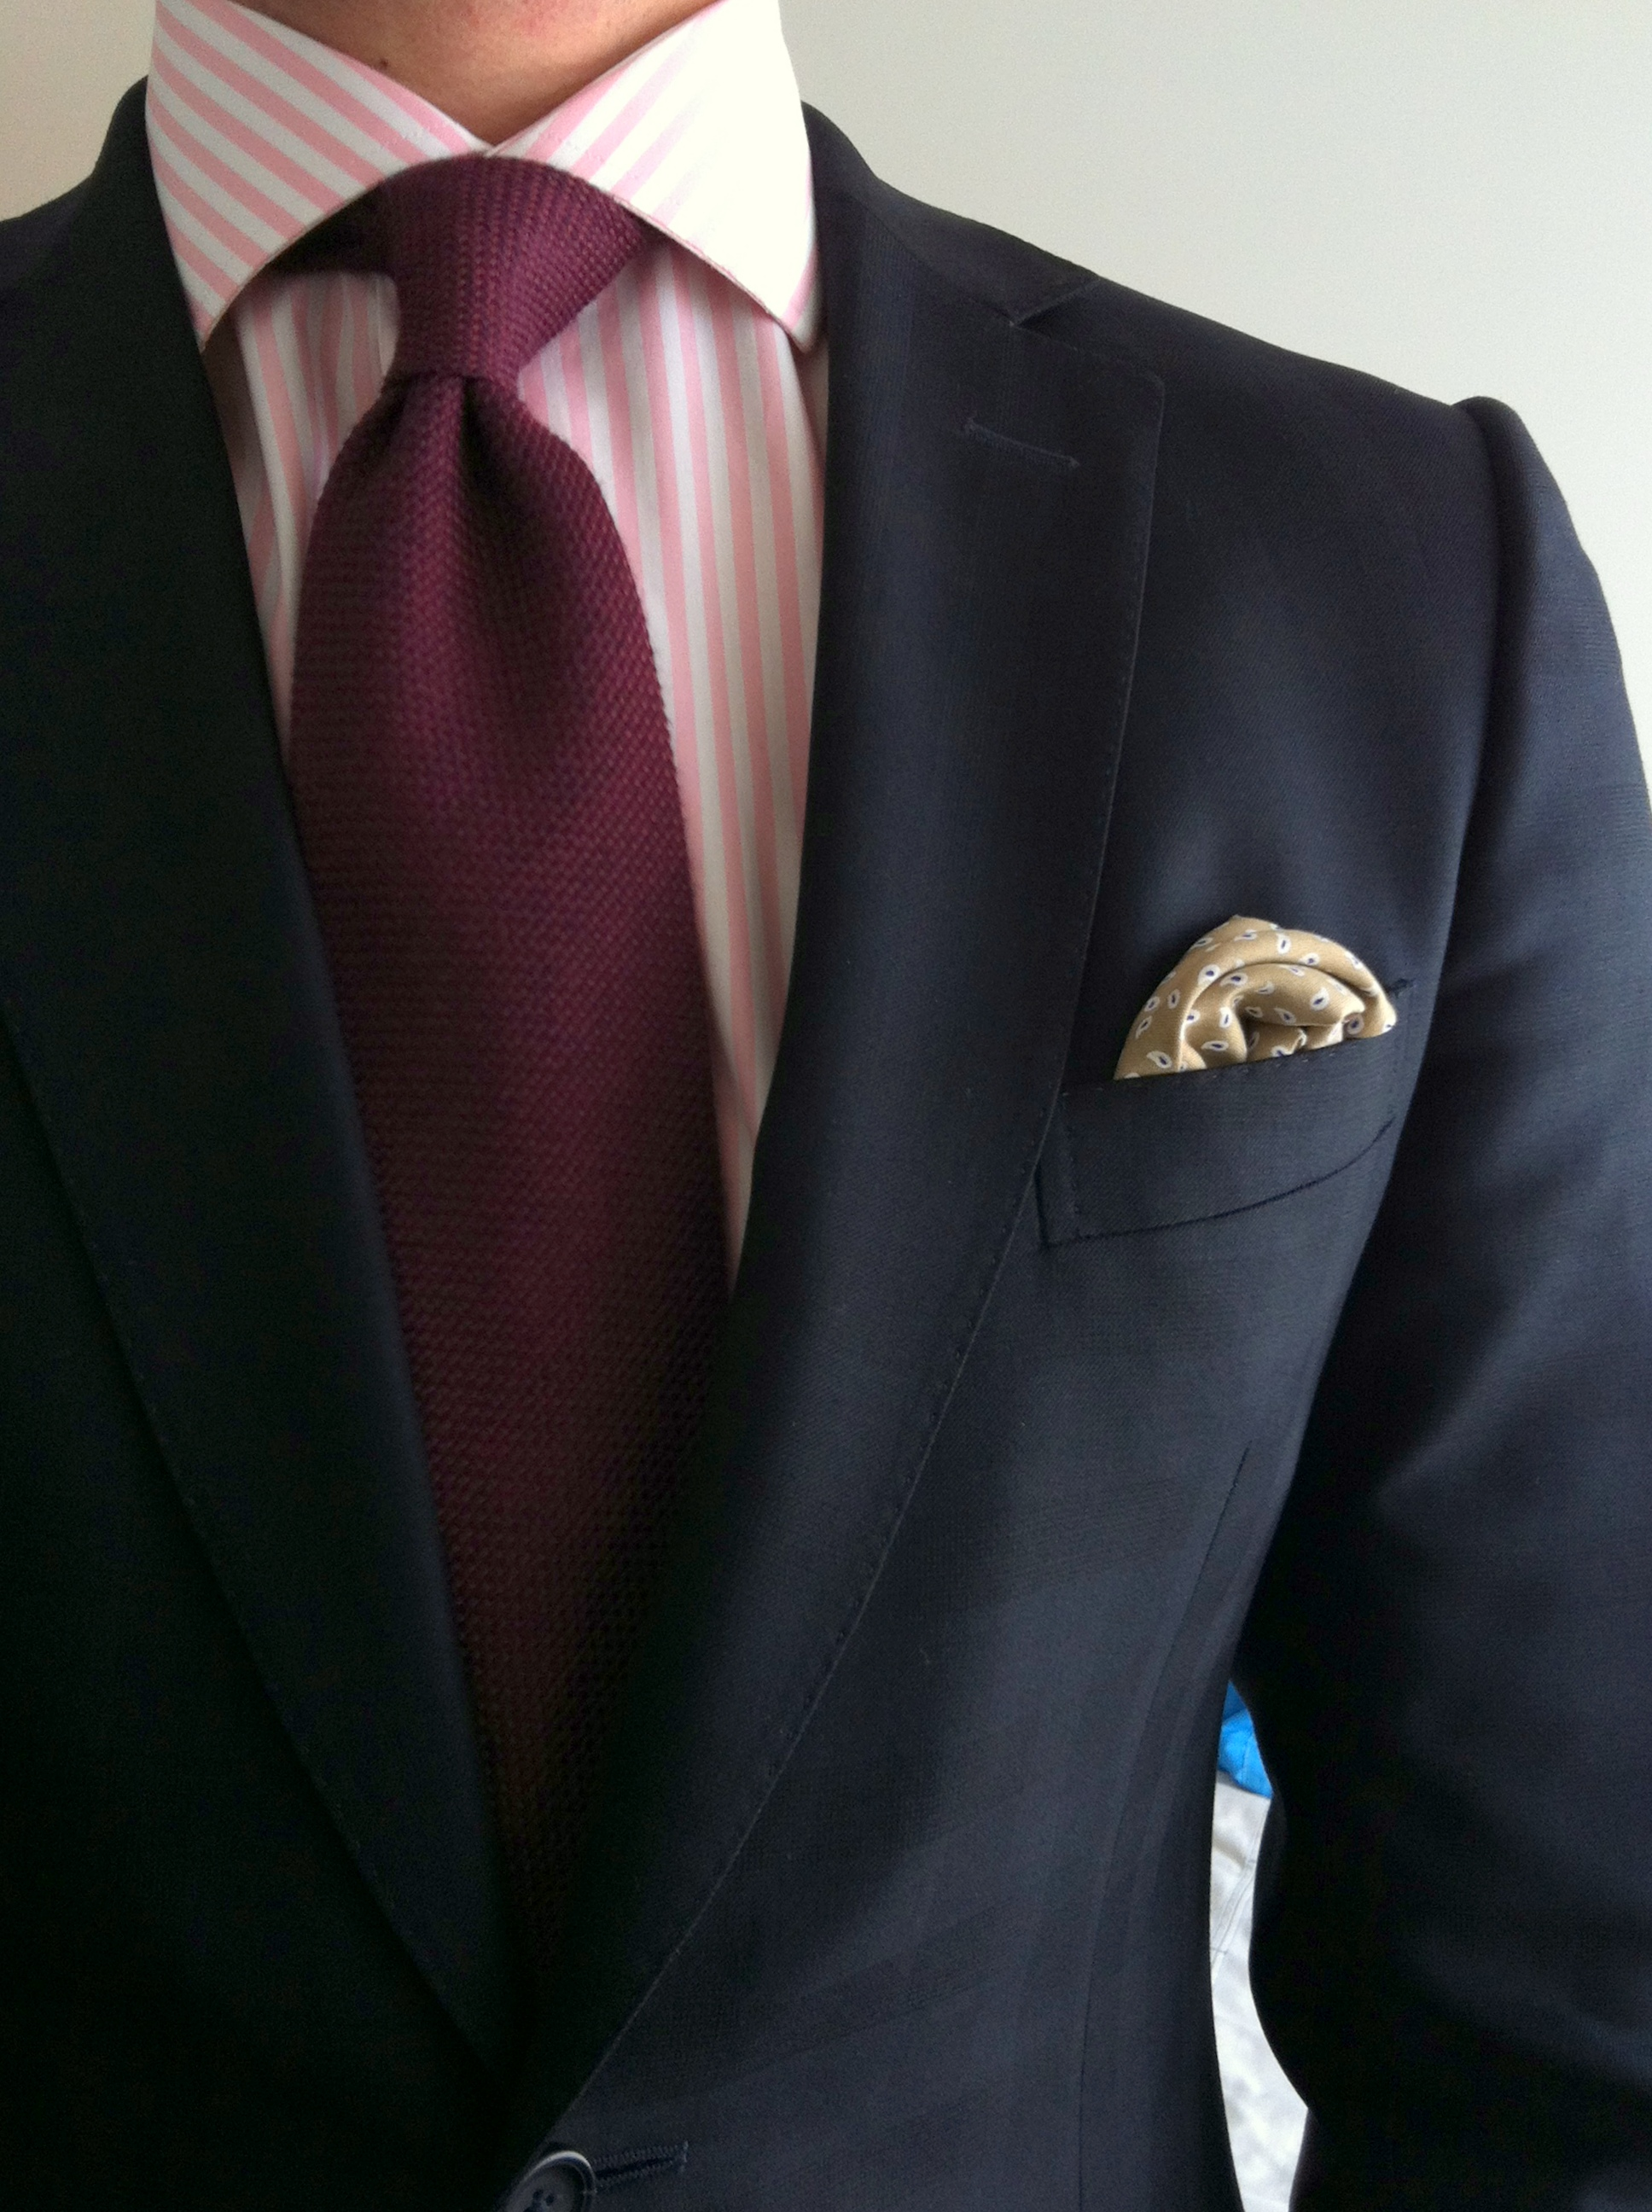 Dimple porn for Ties that go with purple shirts